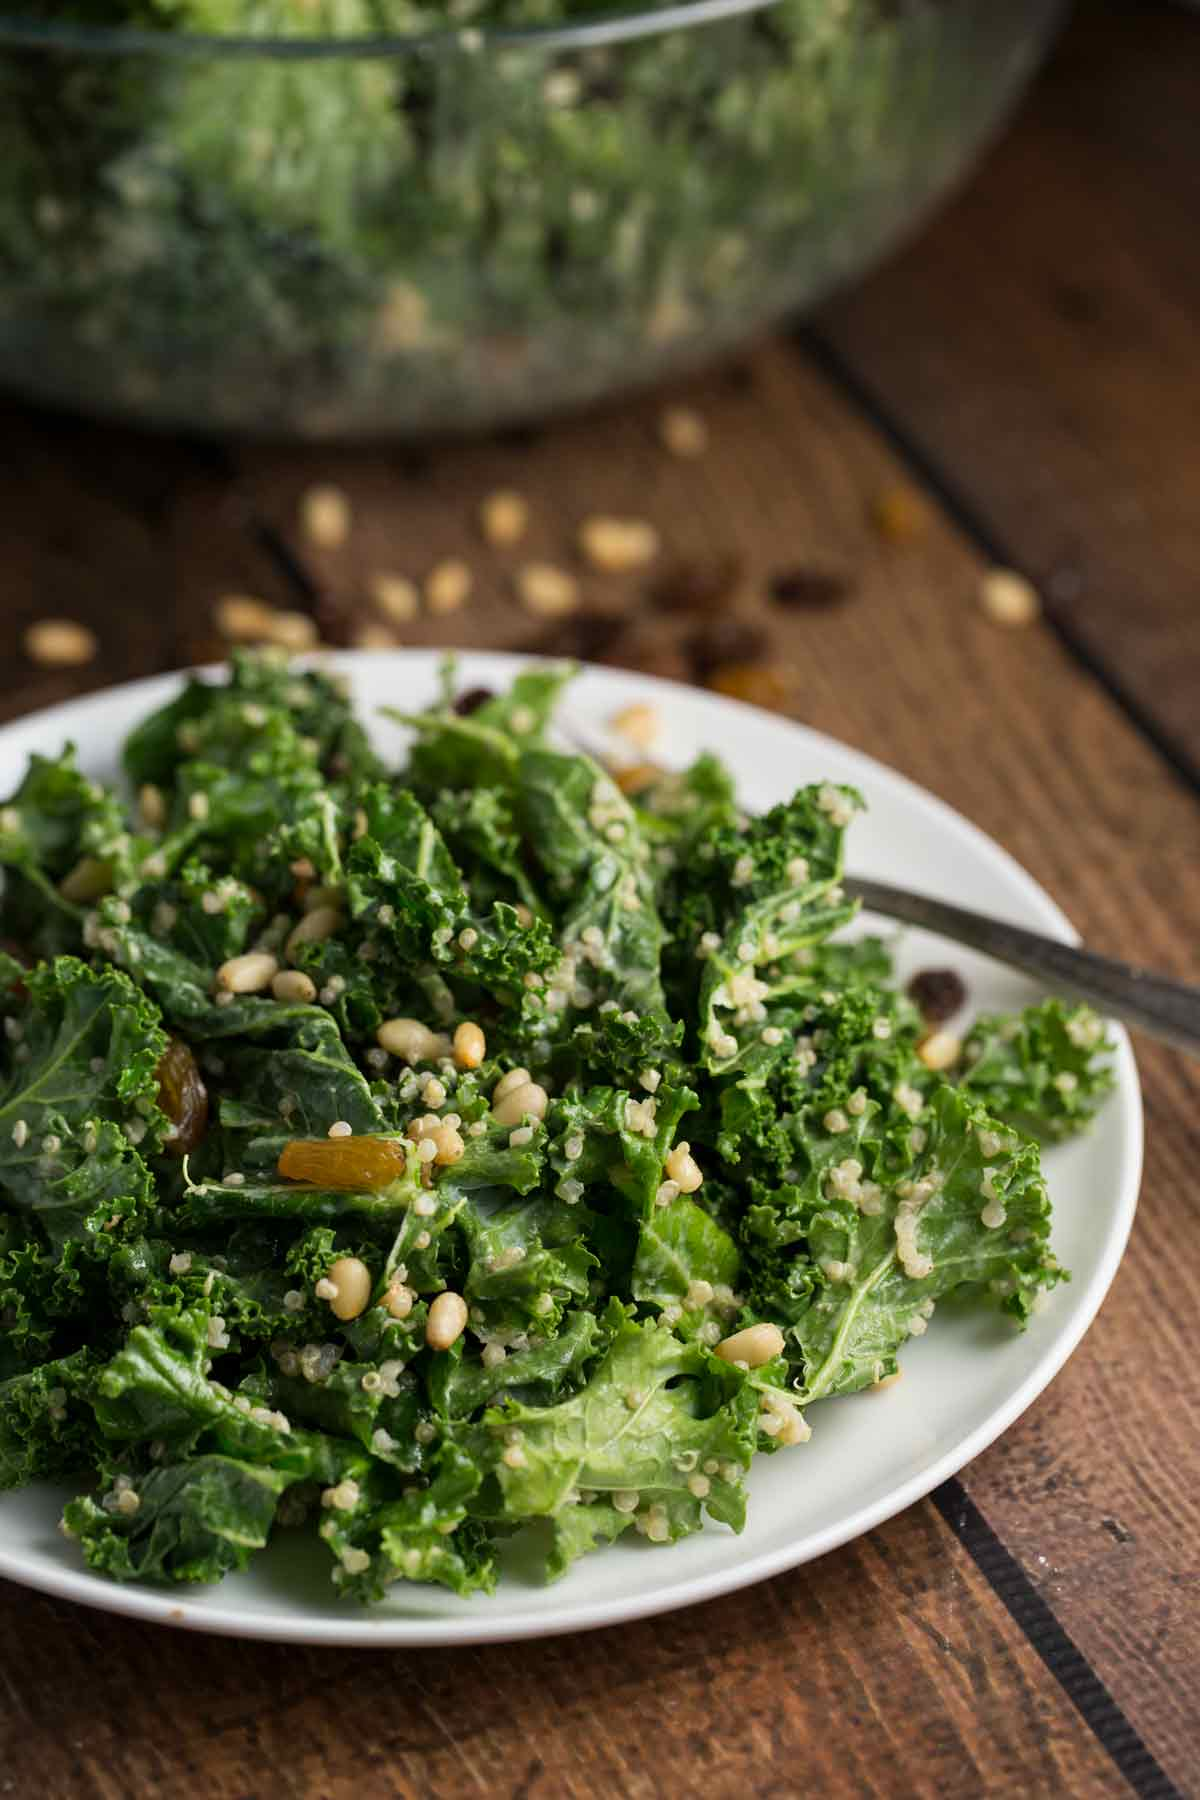 A white plate with a kale salad on top with quinoa and golden raisins.